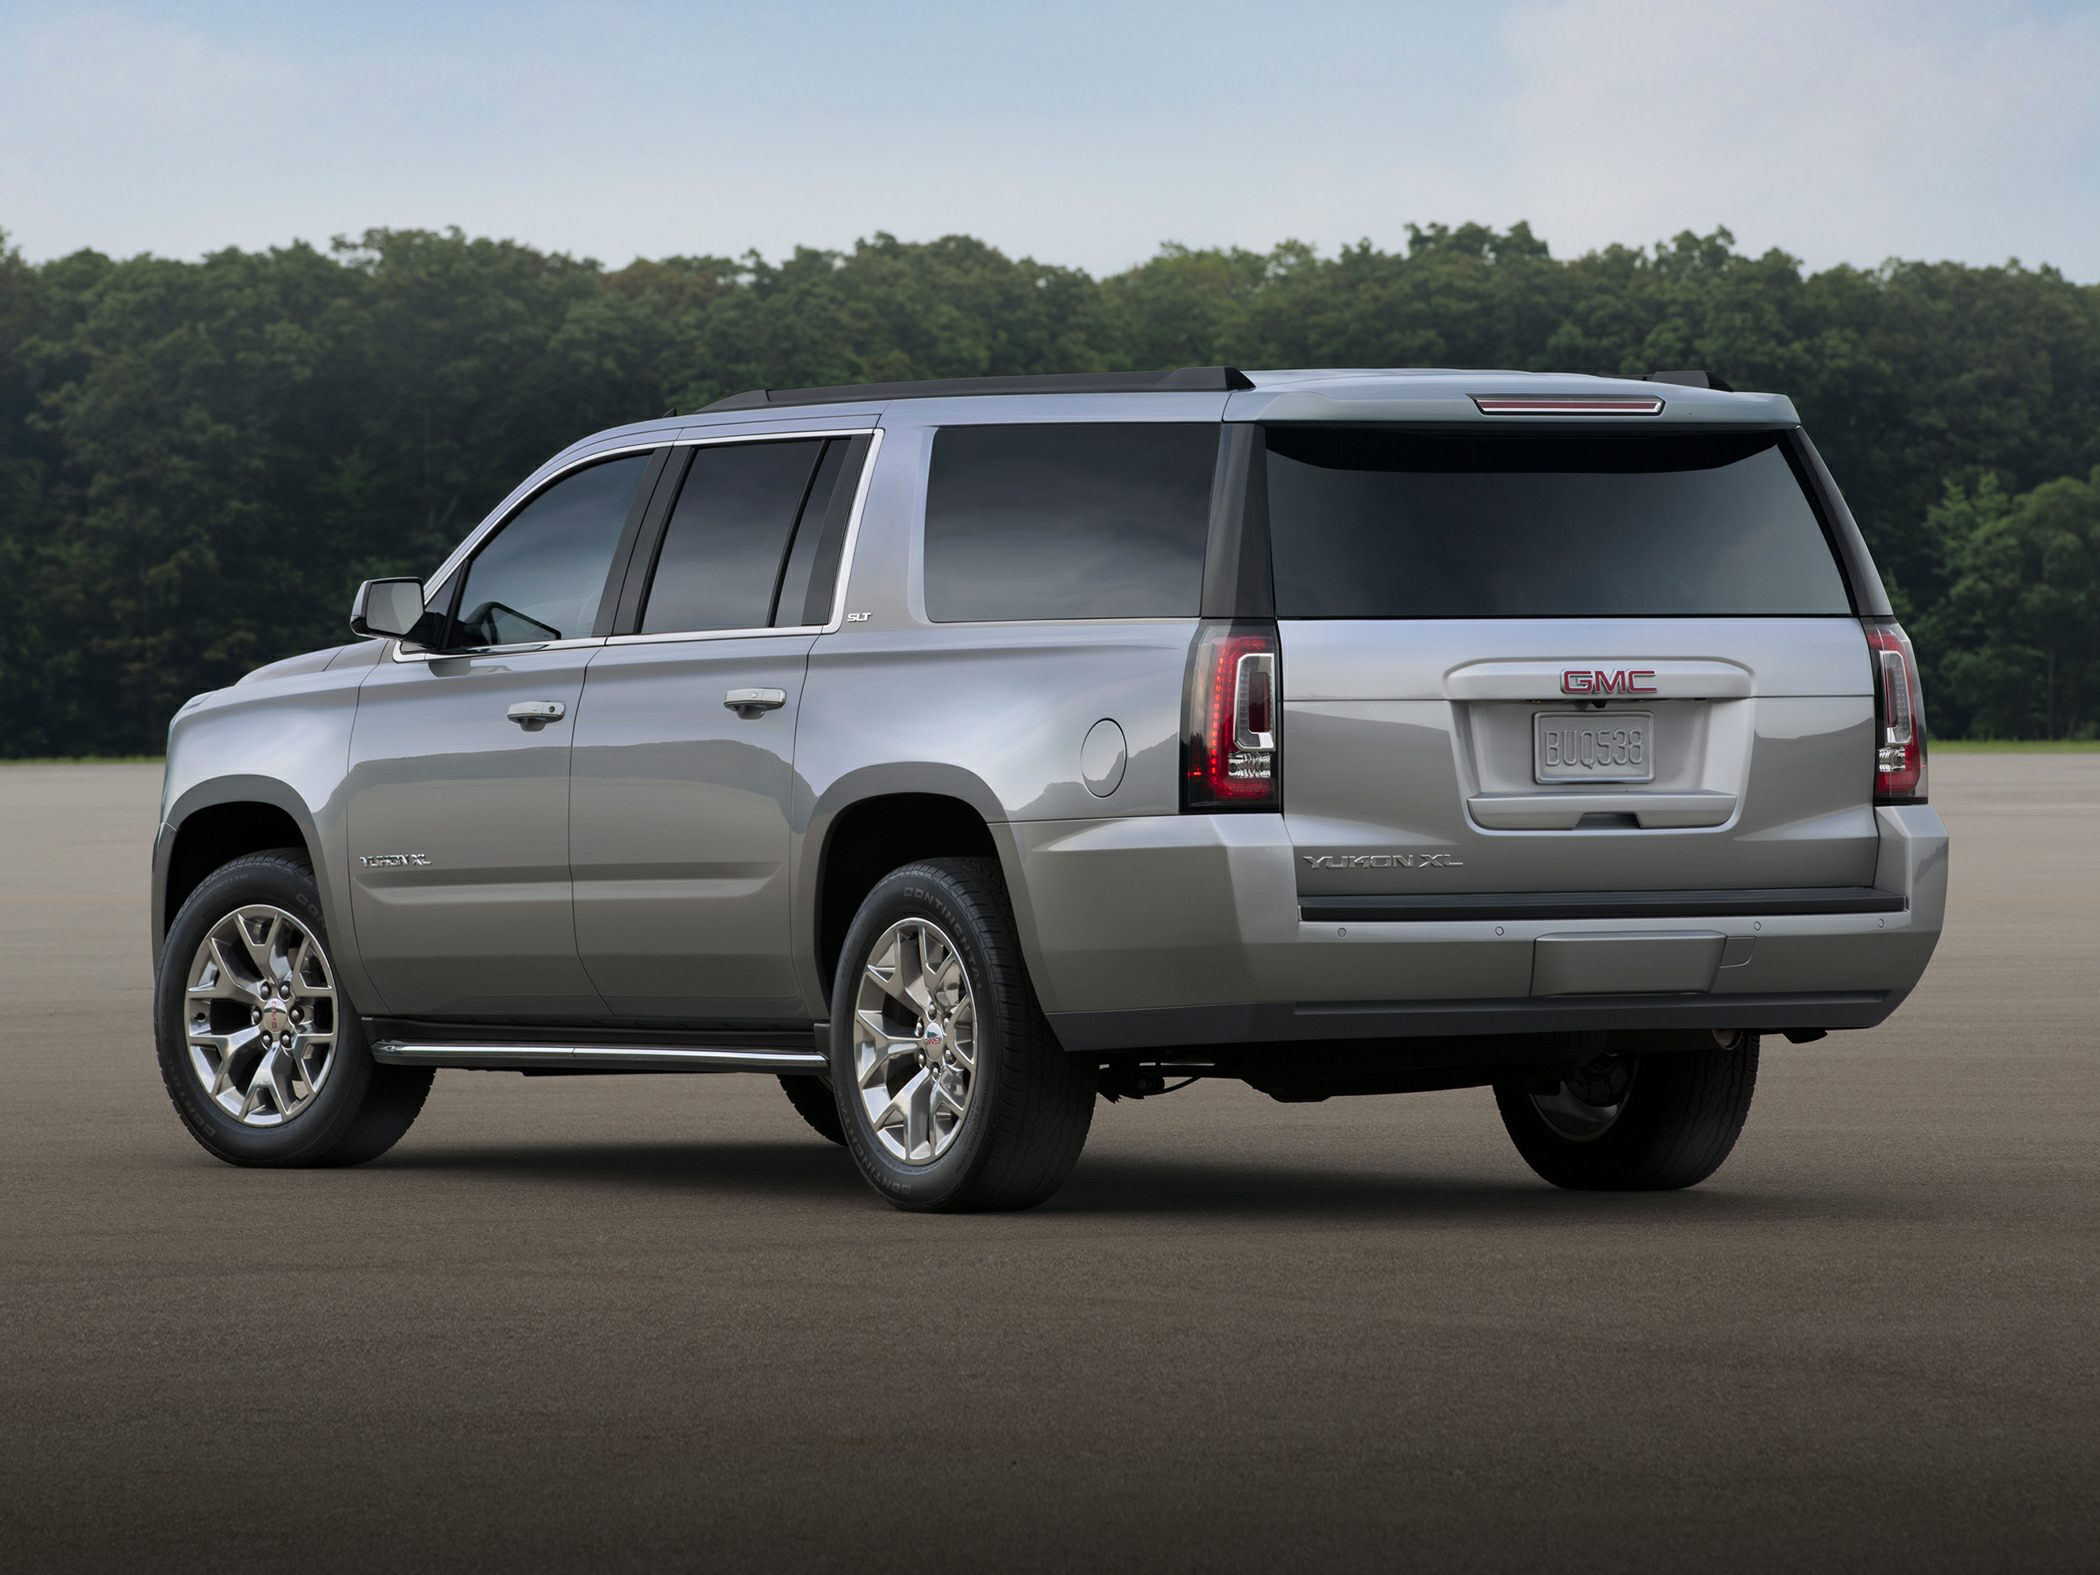 2015 GMC Yukon XL Rear